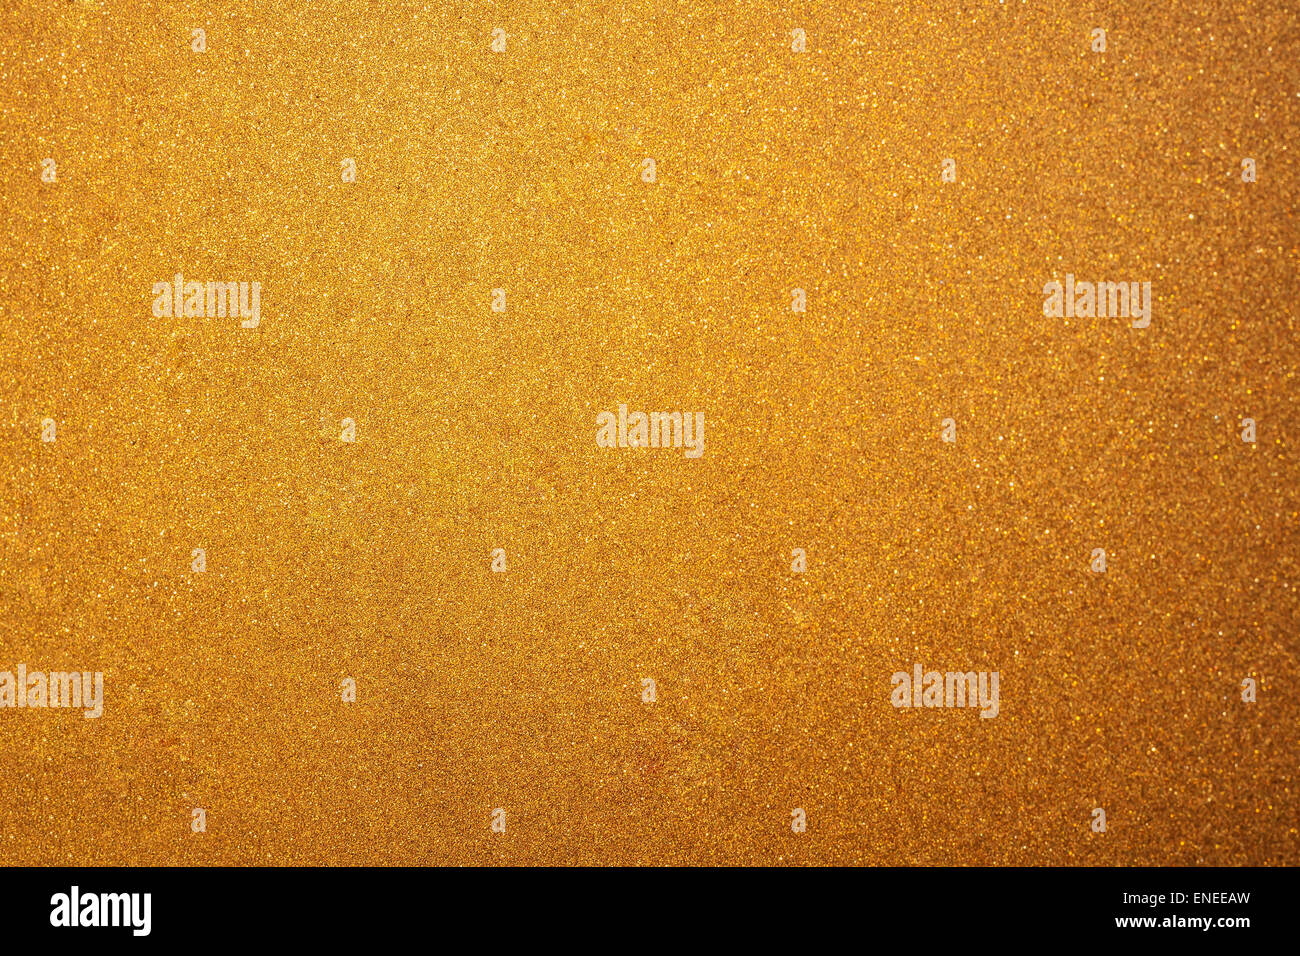 Abstract glittering golden or yellow dust or sand background with blur edges of image - Stock Image